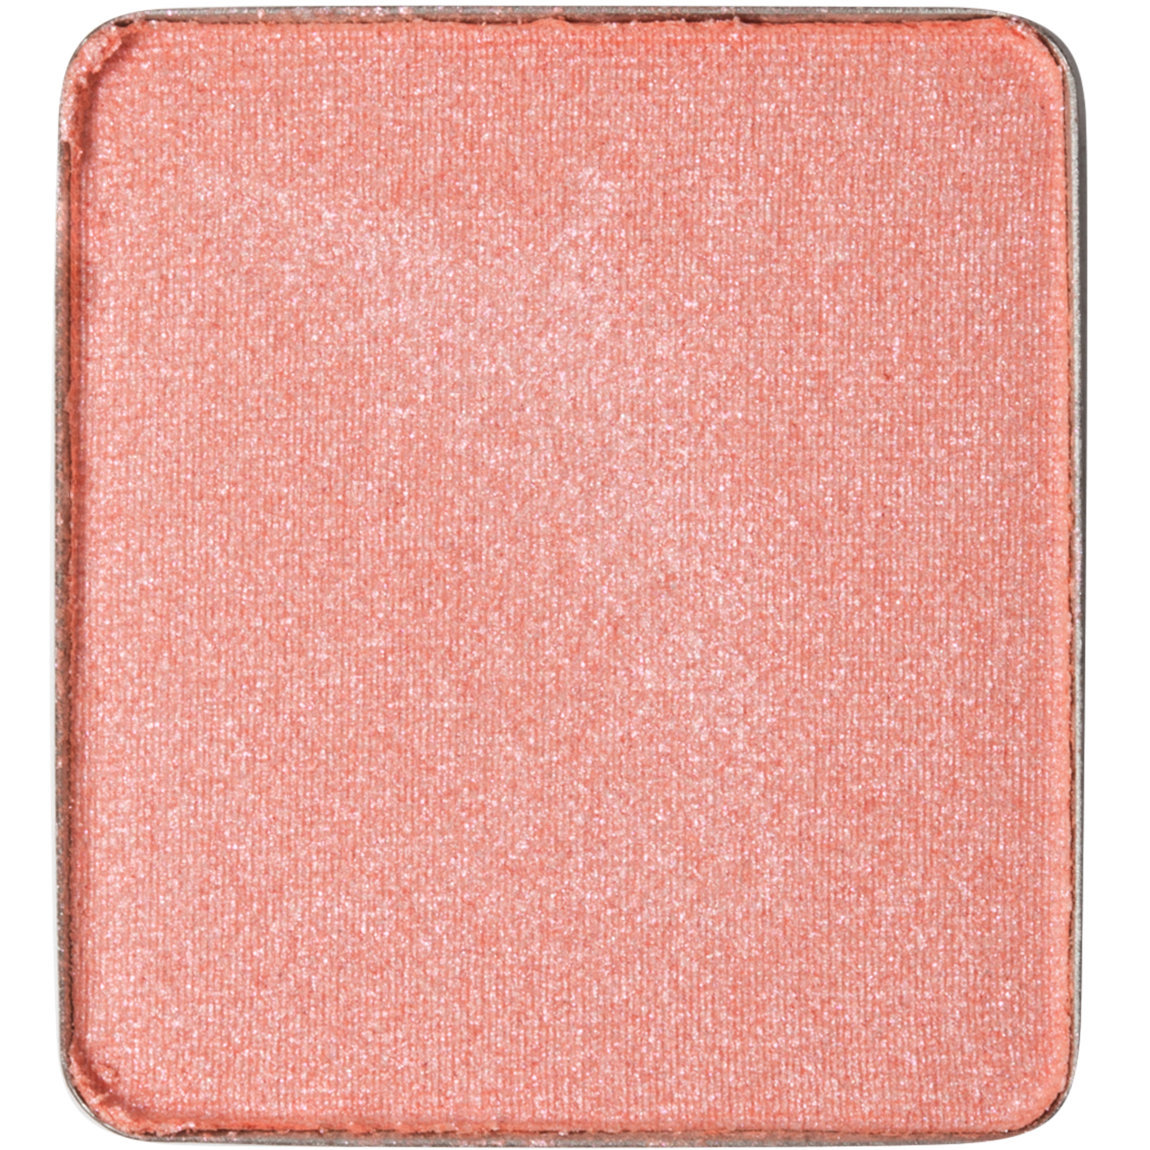 Inglot Cosmetics Freedom System Eye Shadow 162 Shine alternative view 1 - product swatch.